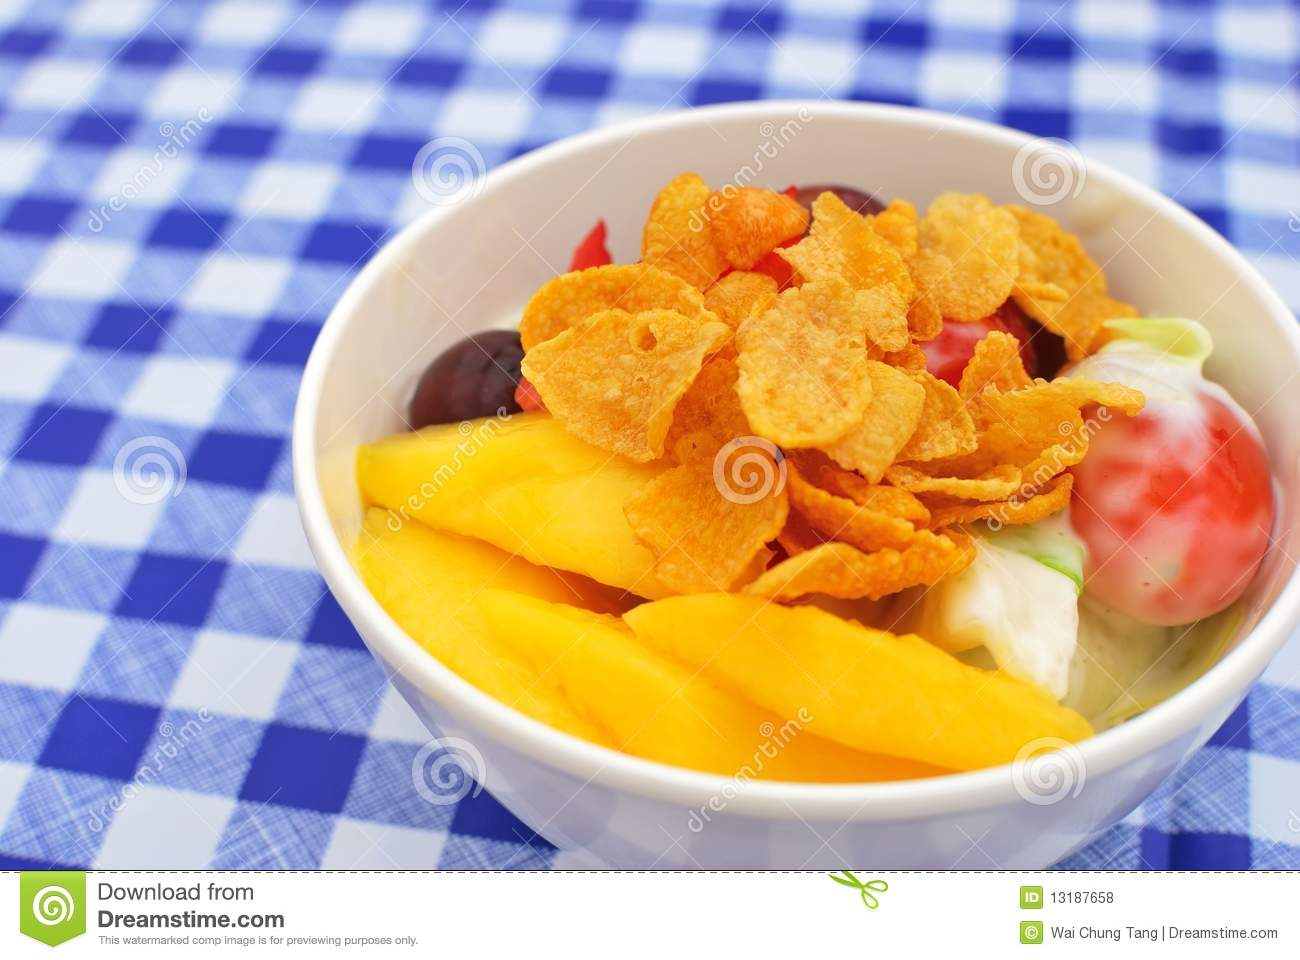 is fruit and fibre cereal healthy healthy fruit diet